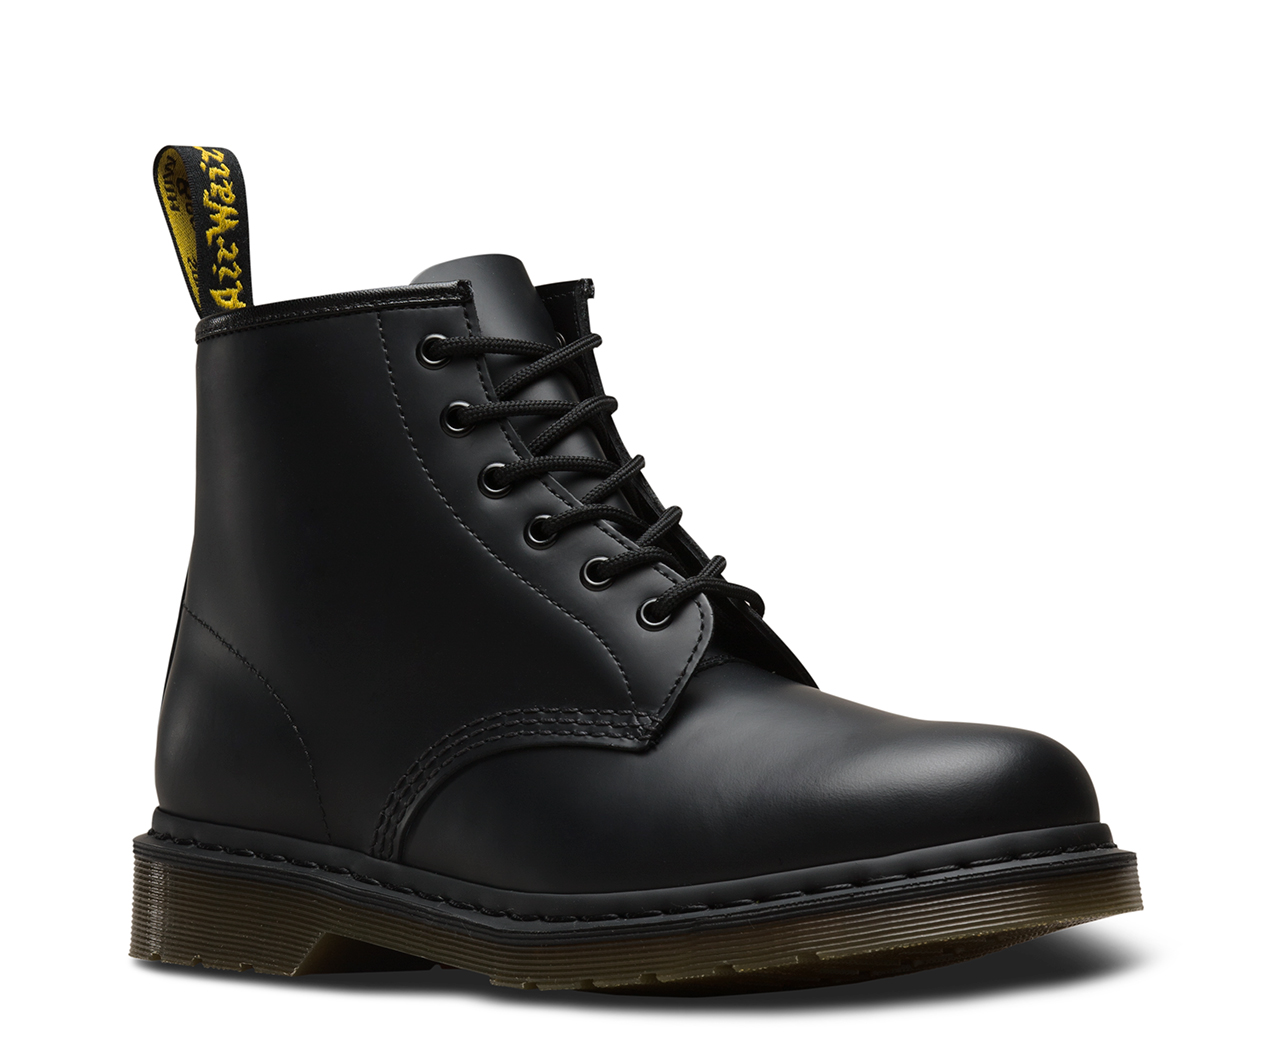 Dr. Martens - History, Philosophy, and Iconic Products